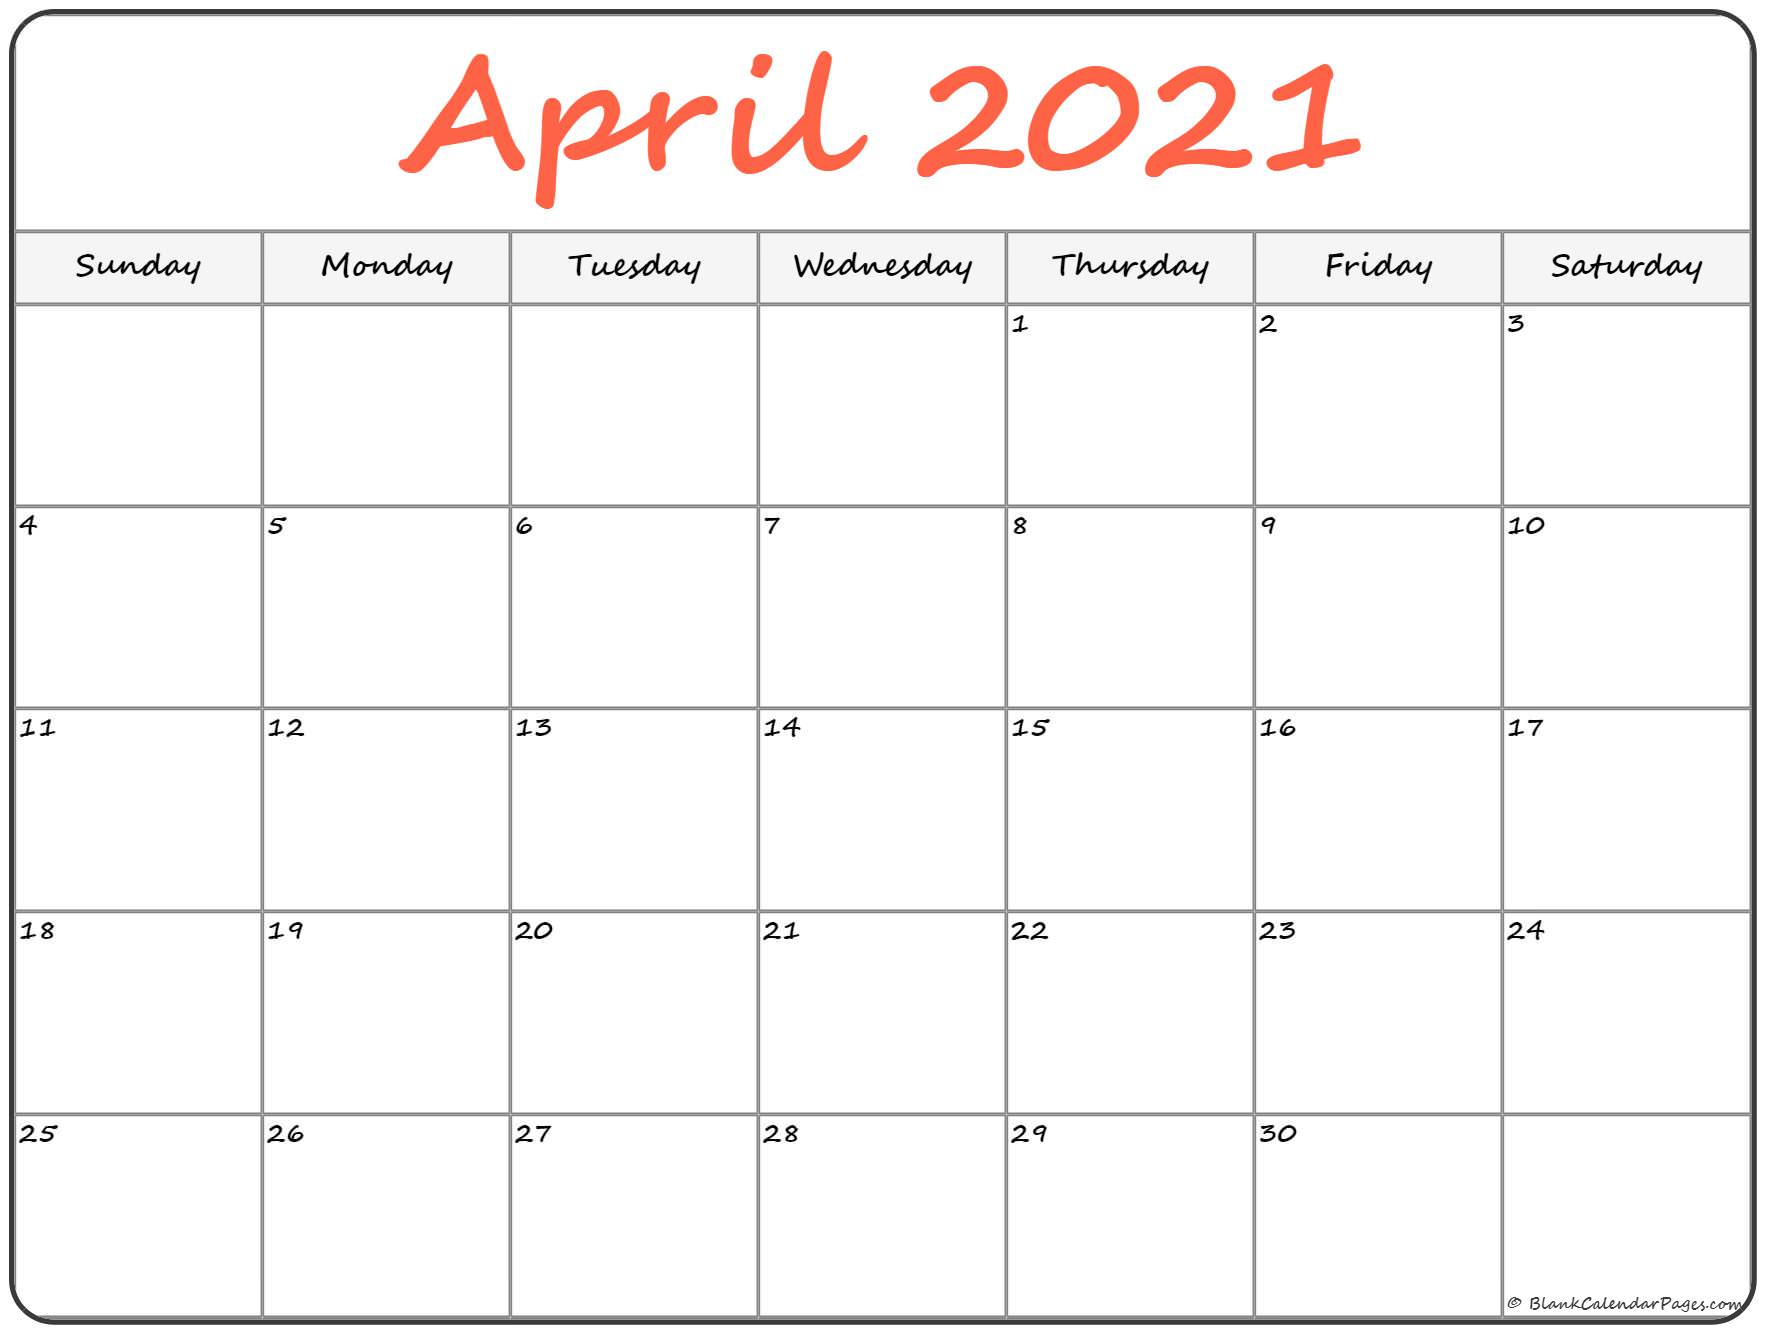 Free april 2021 calendar download